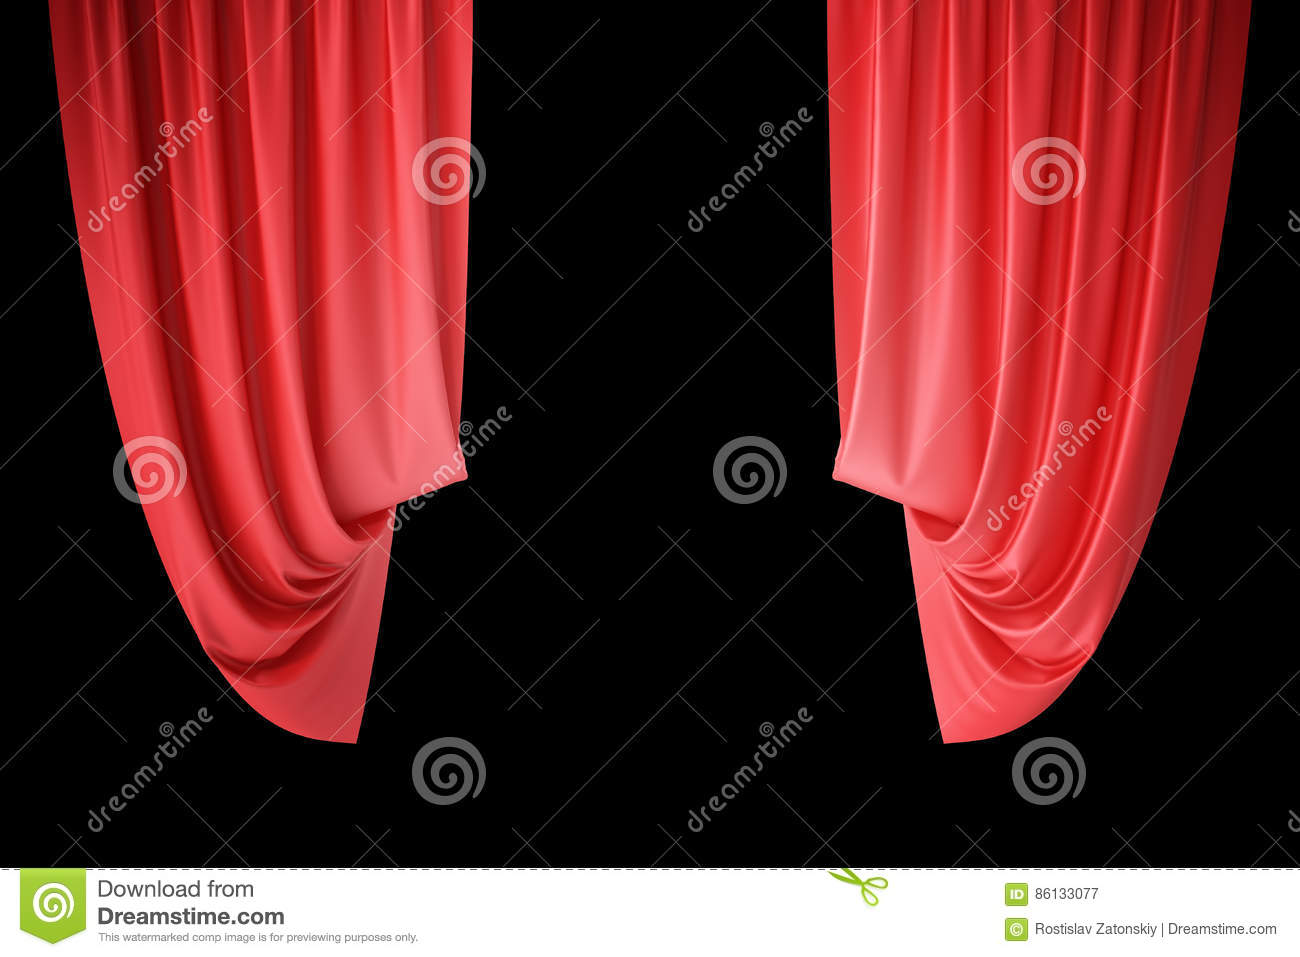 Open theater drapes or stage curtains royalty free stock image image - Red Velvet Stage Curtains Scarlet Theatre Drapery Silk Classical Curtains Red Theater Curtain